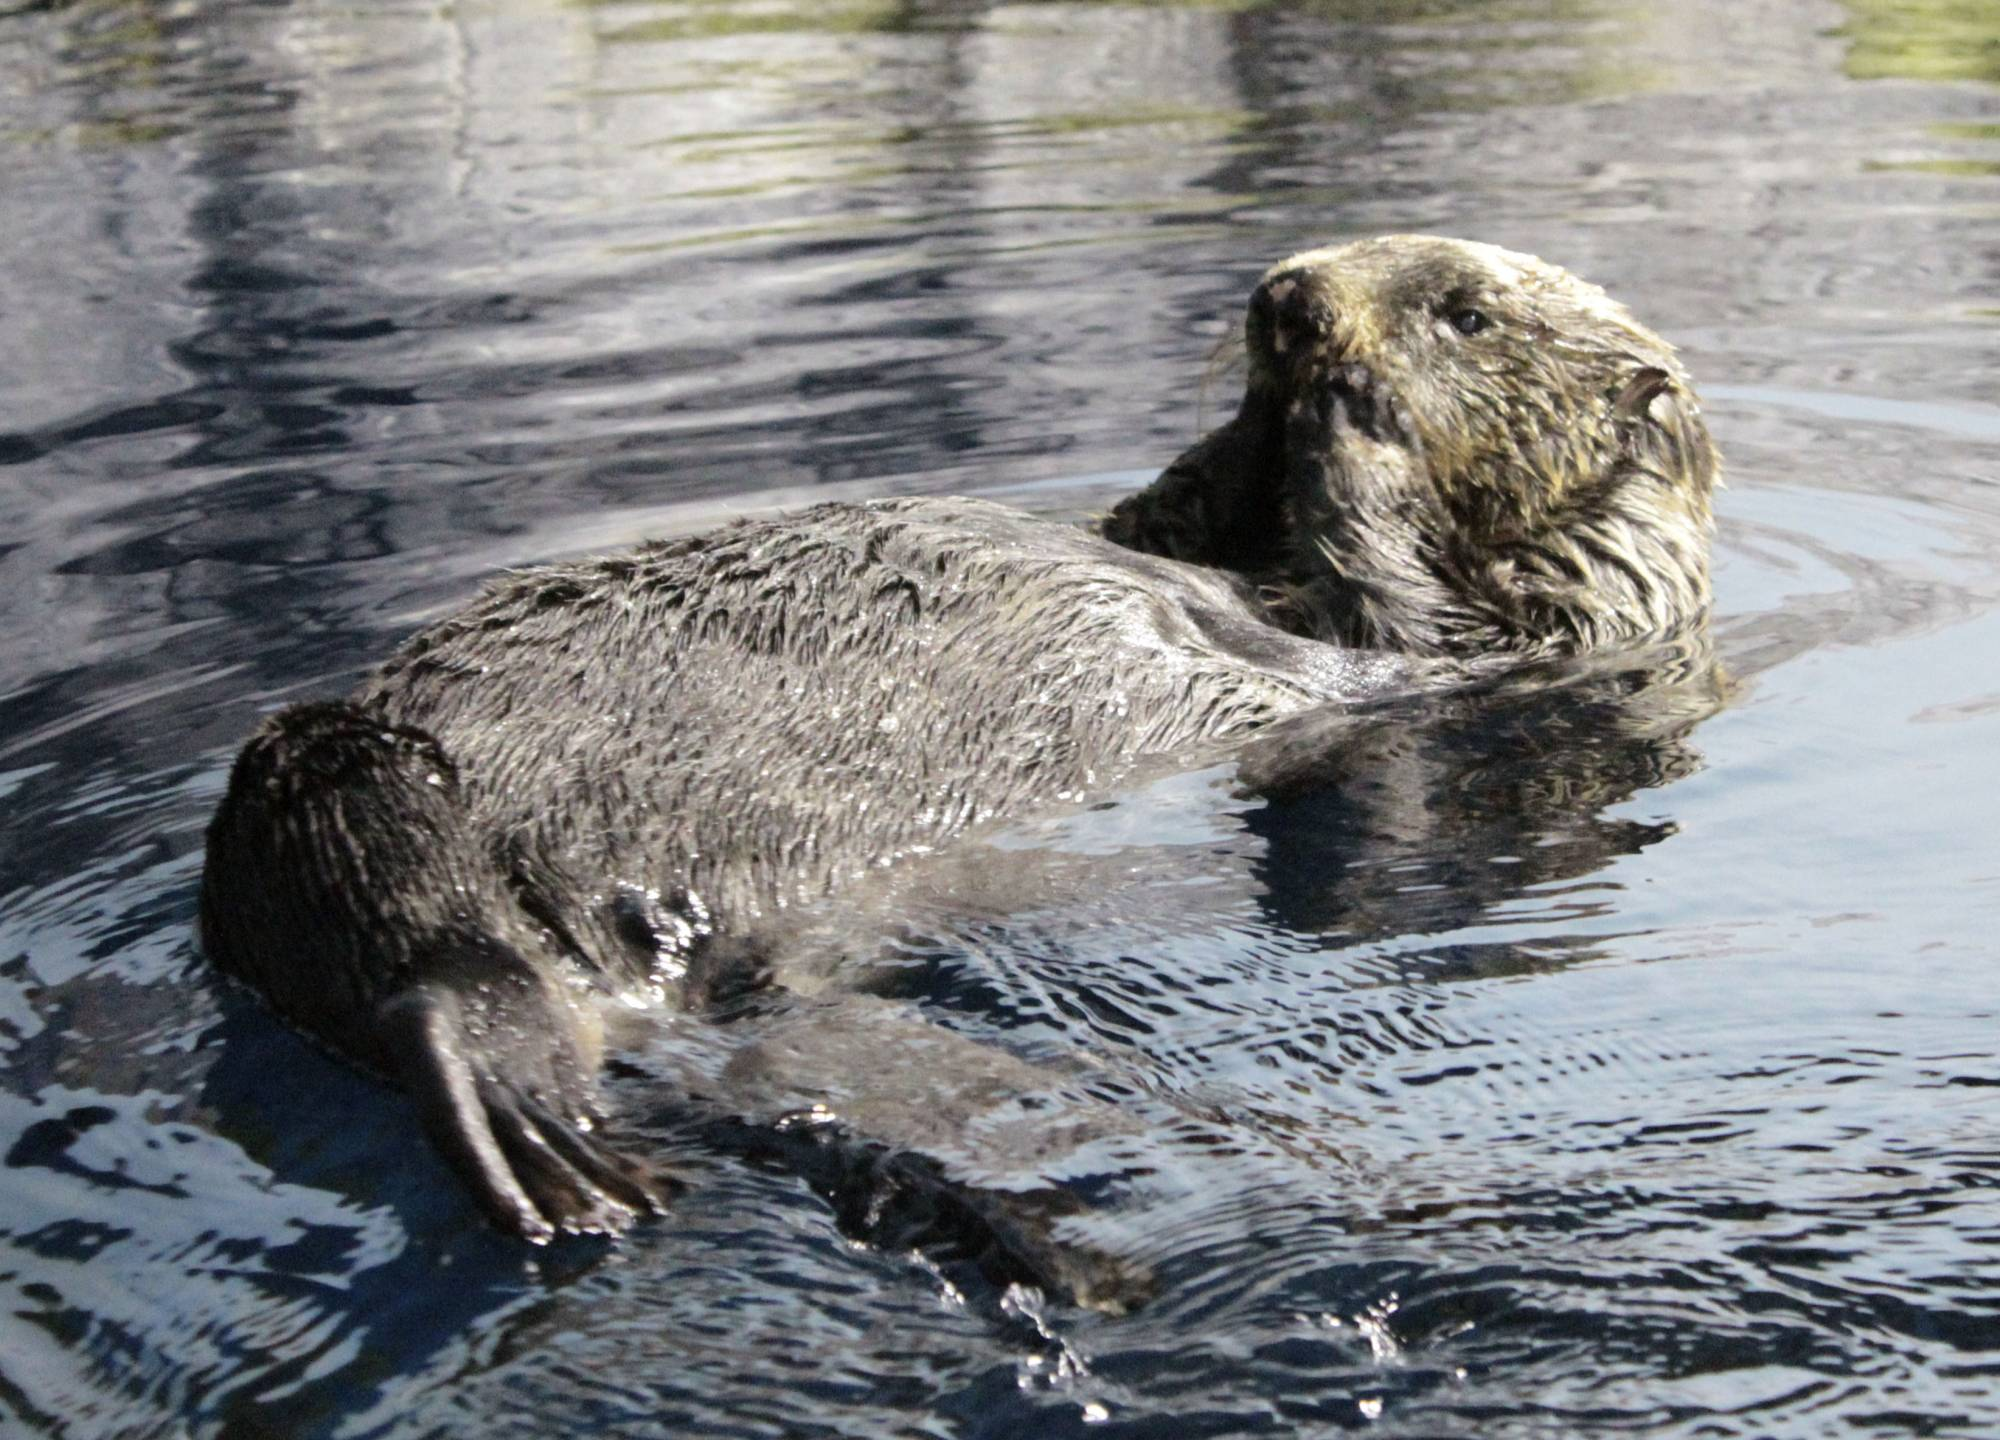 Rasuka, Japan's oldest sea otter in captivity, seen in this file photo, has died at 25 years old — equivalent to 100 human years. | NOTOJIMA AQUARIUM / VIA KYODO